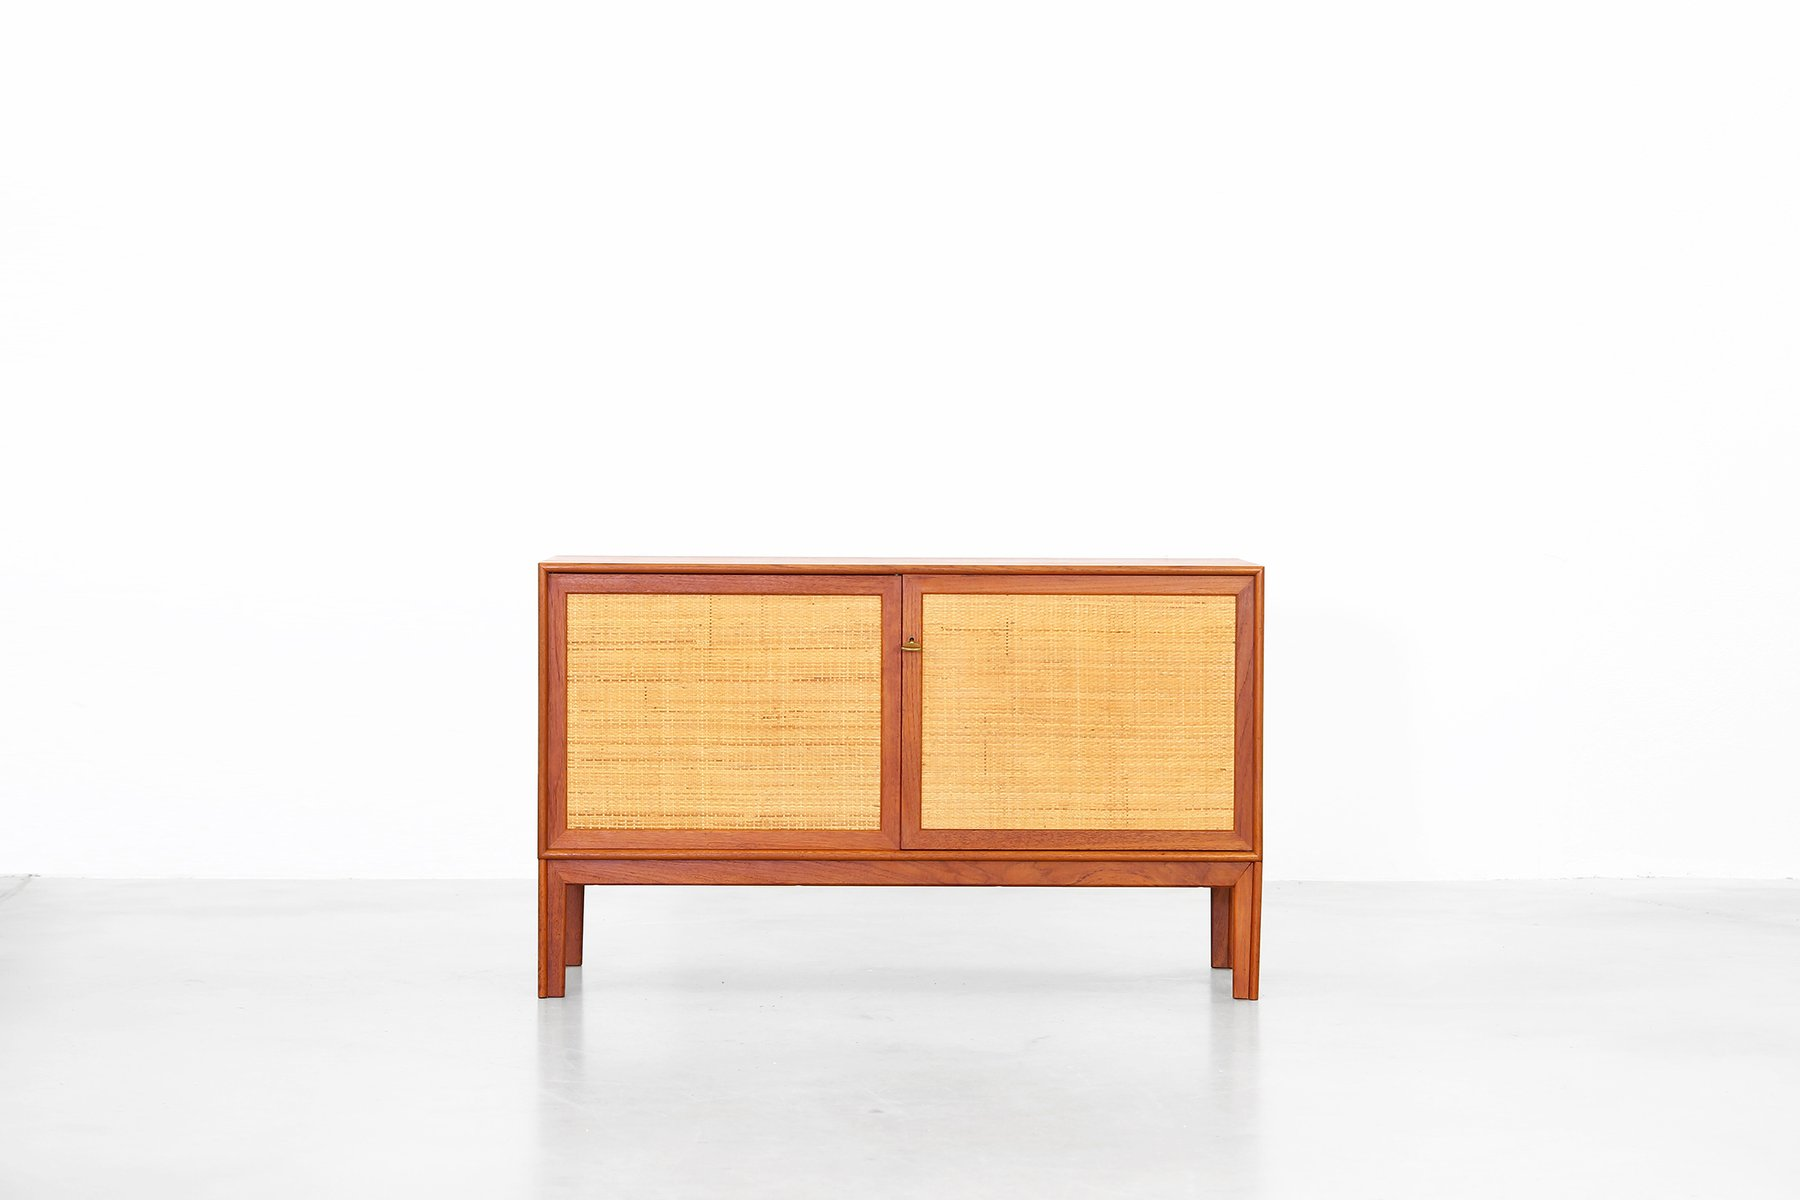 Swedish sideboard by alf svensson for bj sta 1960s for for Sideboard x7